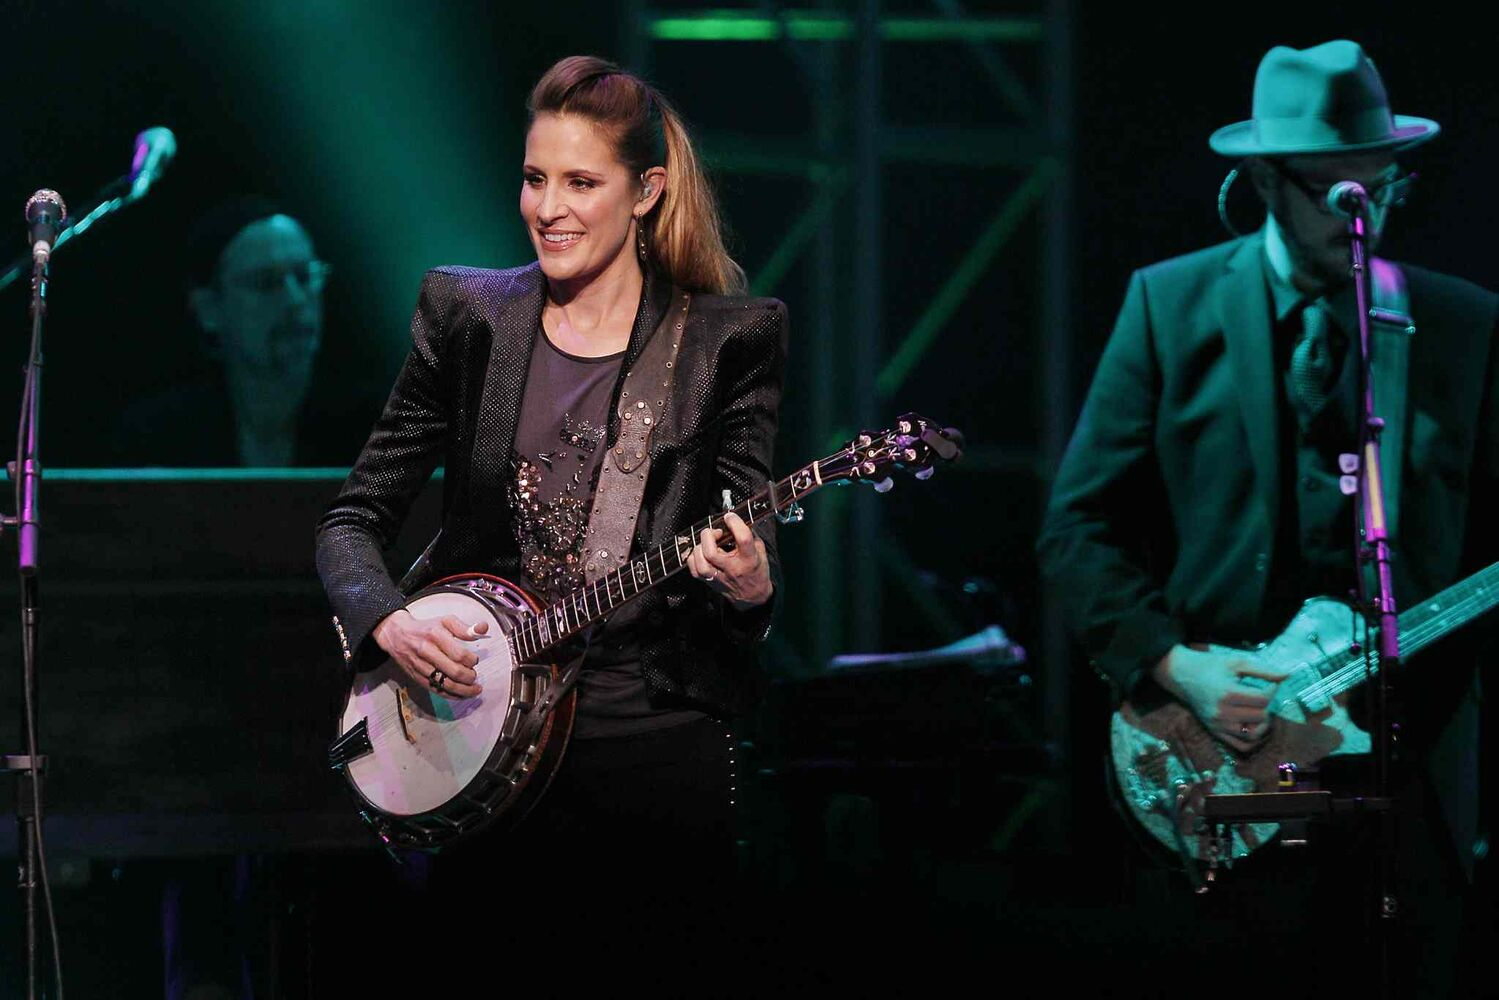 Emily Robison does some banjo pickin' while a bandmate plays guitar during the Dixie Chicks concert at the MTS Centre Tuesday. (JOHN WOODS / WINNIPEG FREE PRESS)